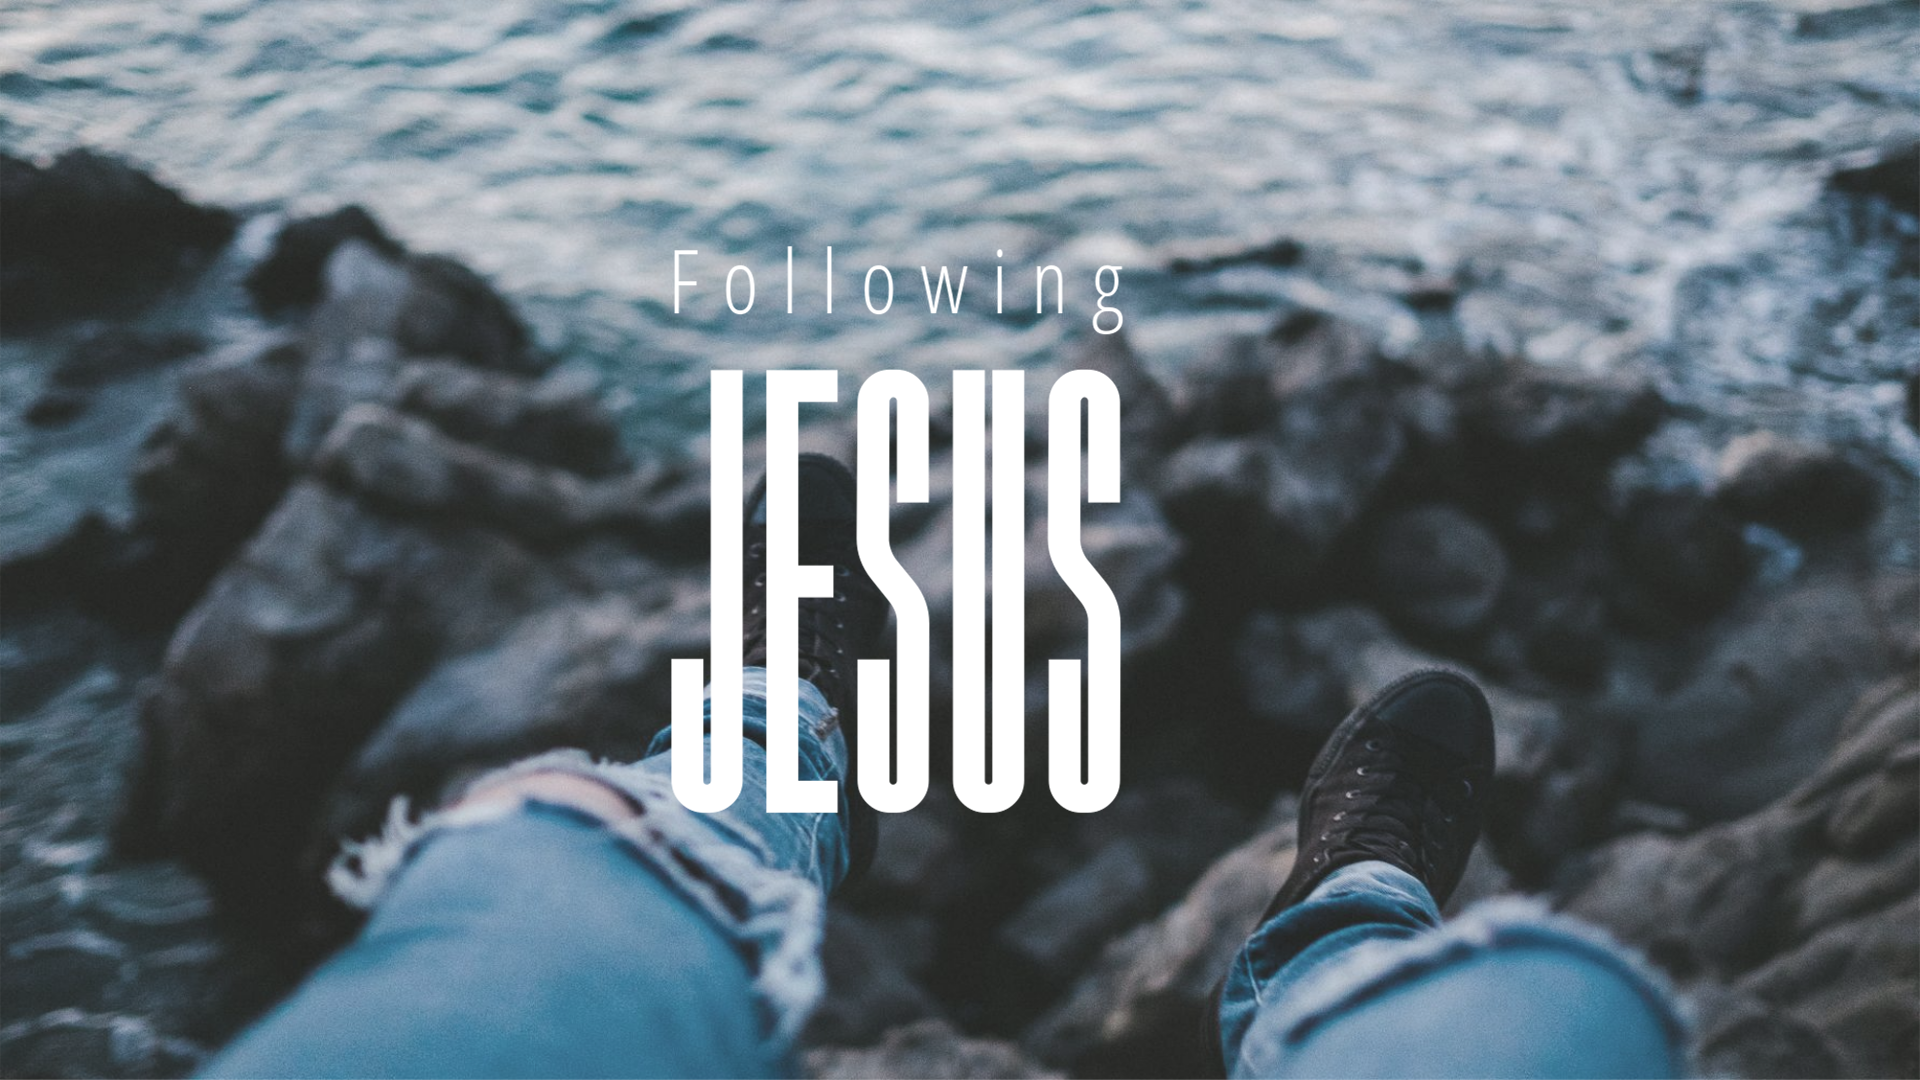 Becoming Like Jesus - Last week we learned that learning from Jesus is not only about acquiring information, but about training to become like Him. This week we are taking a look at all that entails, how do we become like Jesus? Can we even do it in the first place? And what does that mean for how we live our lives?